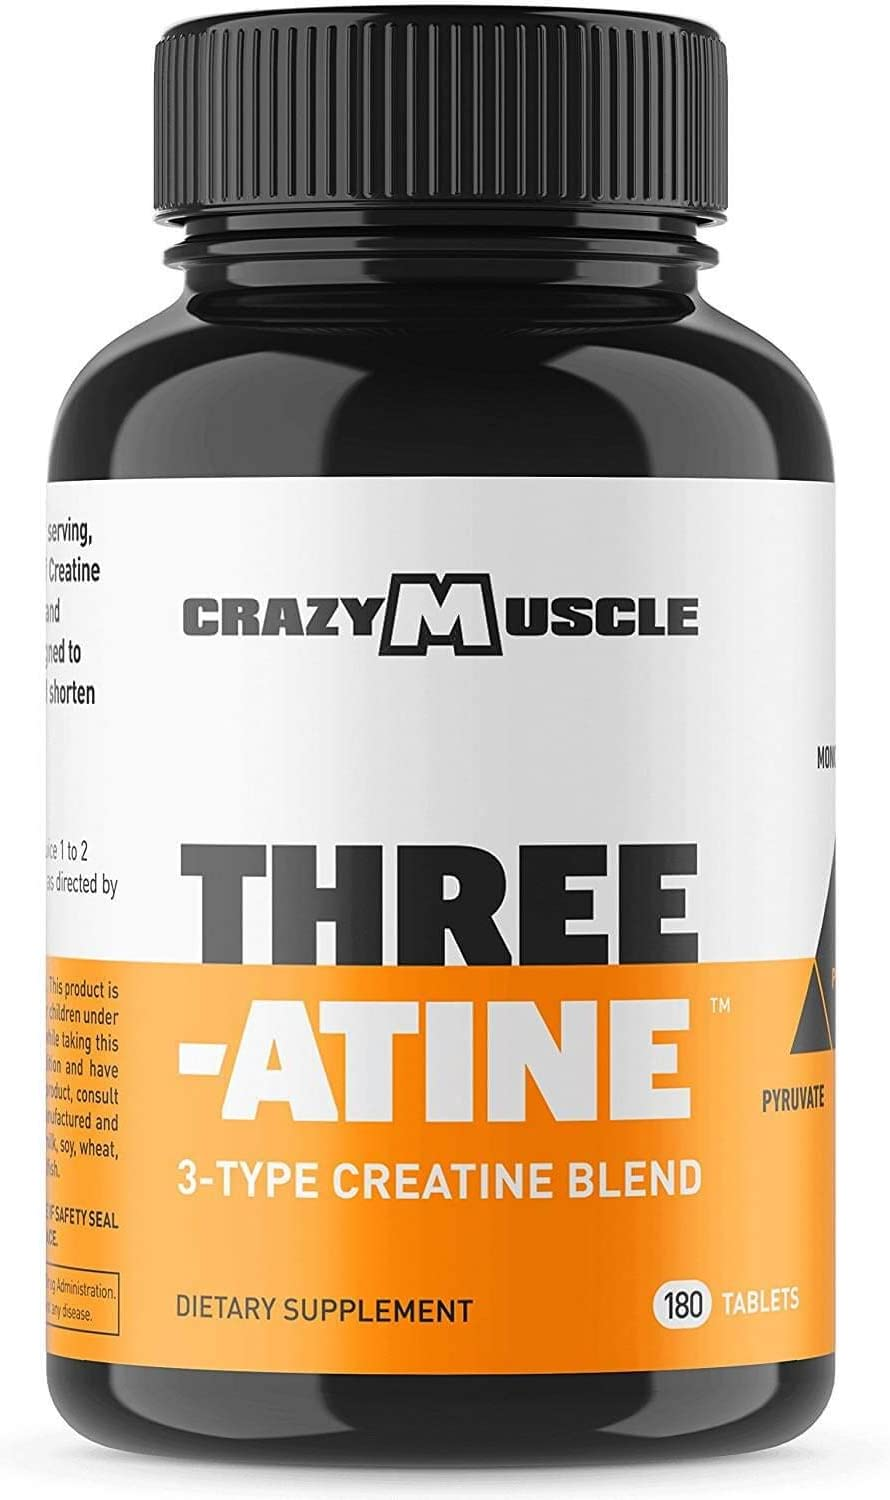 Creatine Pills 2 Month Supply 5,000mg Per Serving – 180 Creatine Tablets Better Than creatine Capsules – Muscle Gain Supplement with 5g of Creatine Monohydrate, Pyruvate AKG – Optimum Strength